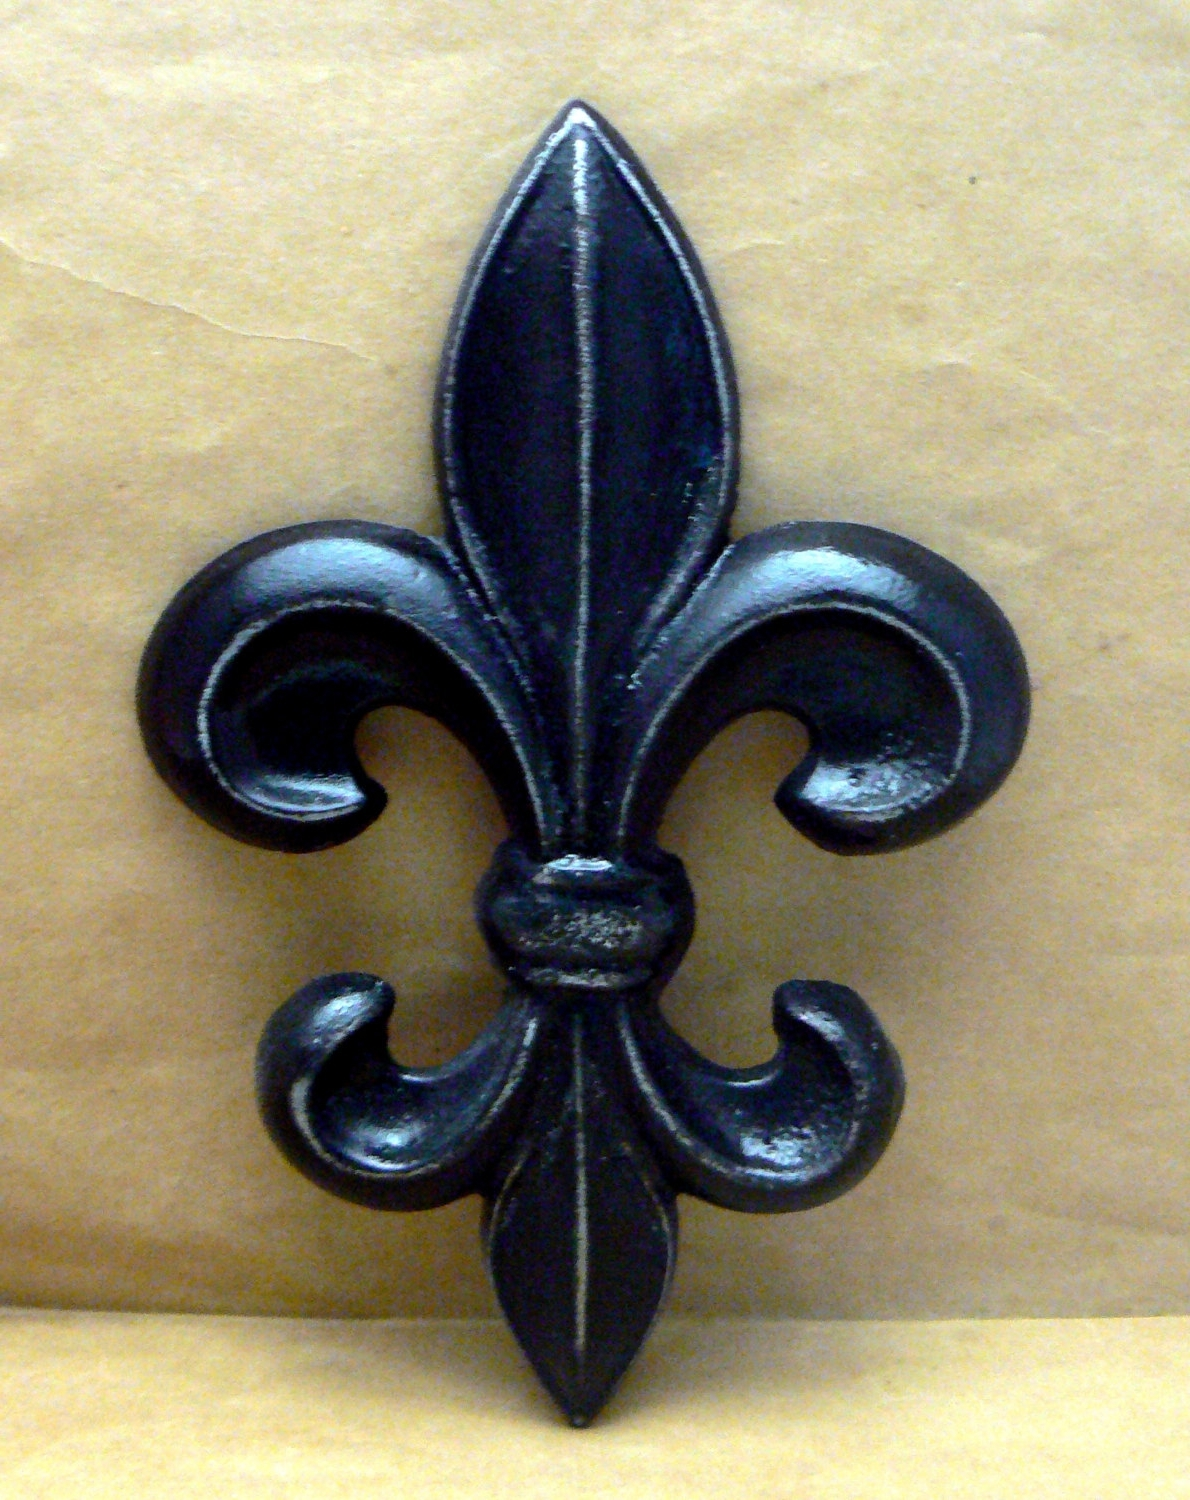 Metal Fleur De Lis Wall Art Intended For Popular Fleur De Lis Cast Iron Fdl Wall Art Black Shabby Chic Home Decor (View 7 of 15)